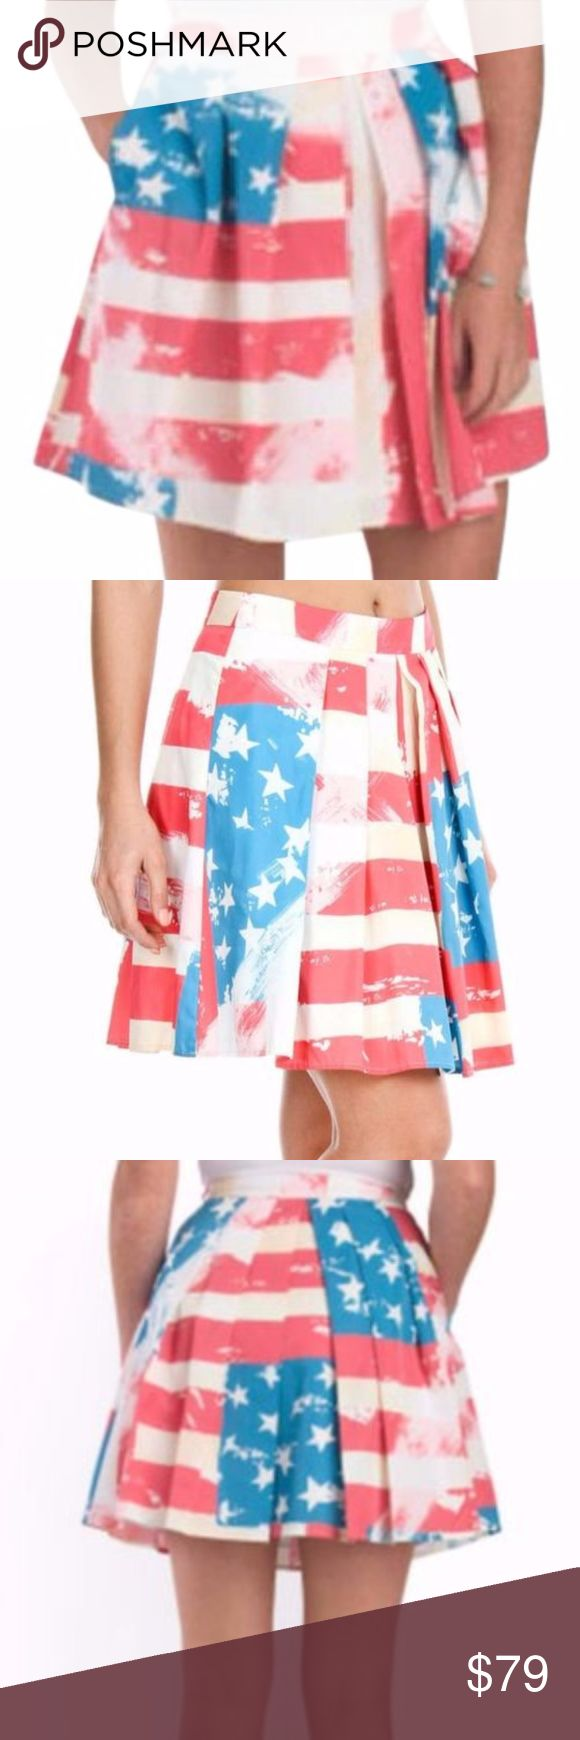 Catherine Malandrino Pleated American Flag Skirt Item Details....   Designer: Catherine by Catherine Malandrino   Size: 4   Fabric: 100% polyester   Lined:  yes    Approximate Measurements:   *All measurement taken laying flat, unstretched.   Description: Get your girl power on in this red, white and blue fully pleated American Flag Rocket Skirt.  Side hidden zip closure, banded waist, box pleats.  Great stylish look for a patriotic event.   Condition:  Brand new with tags.  Retail $138…